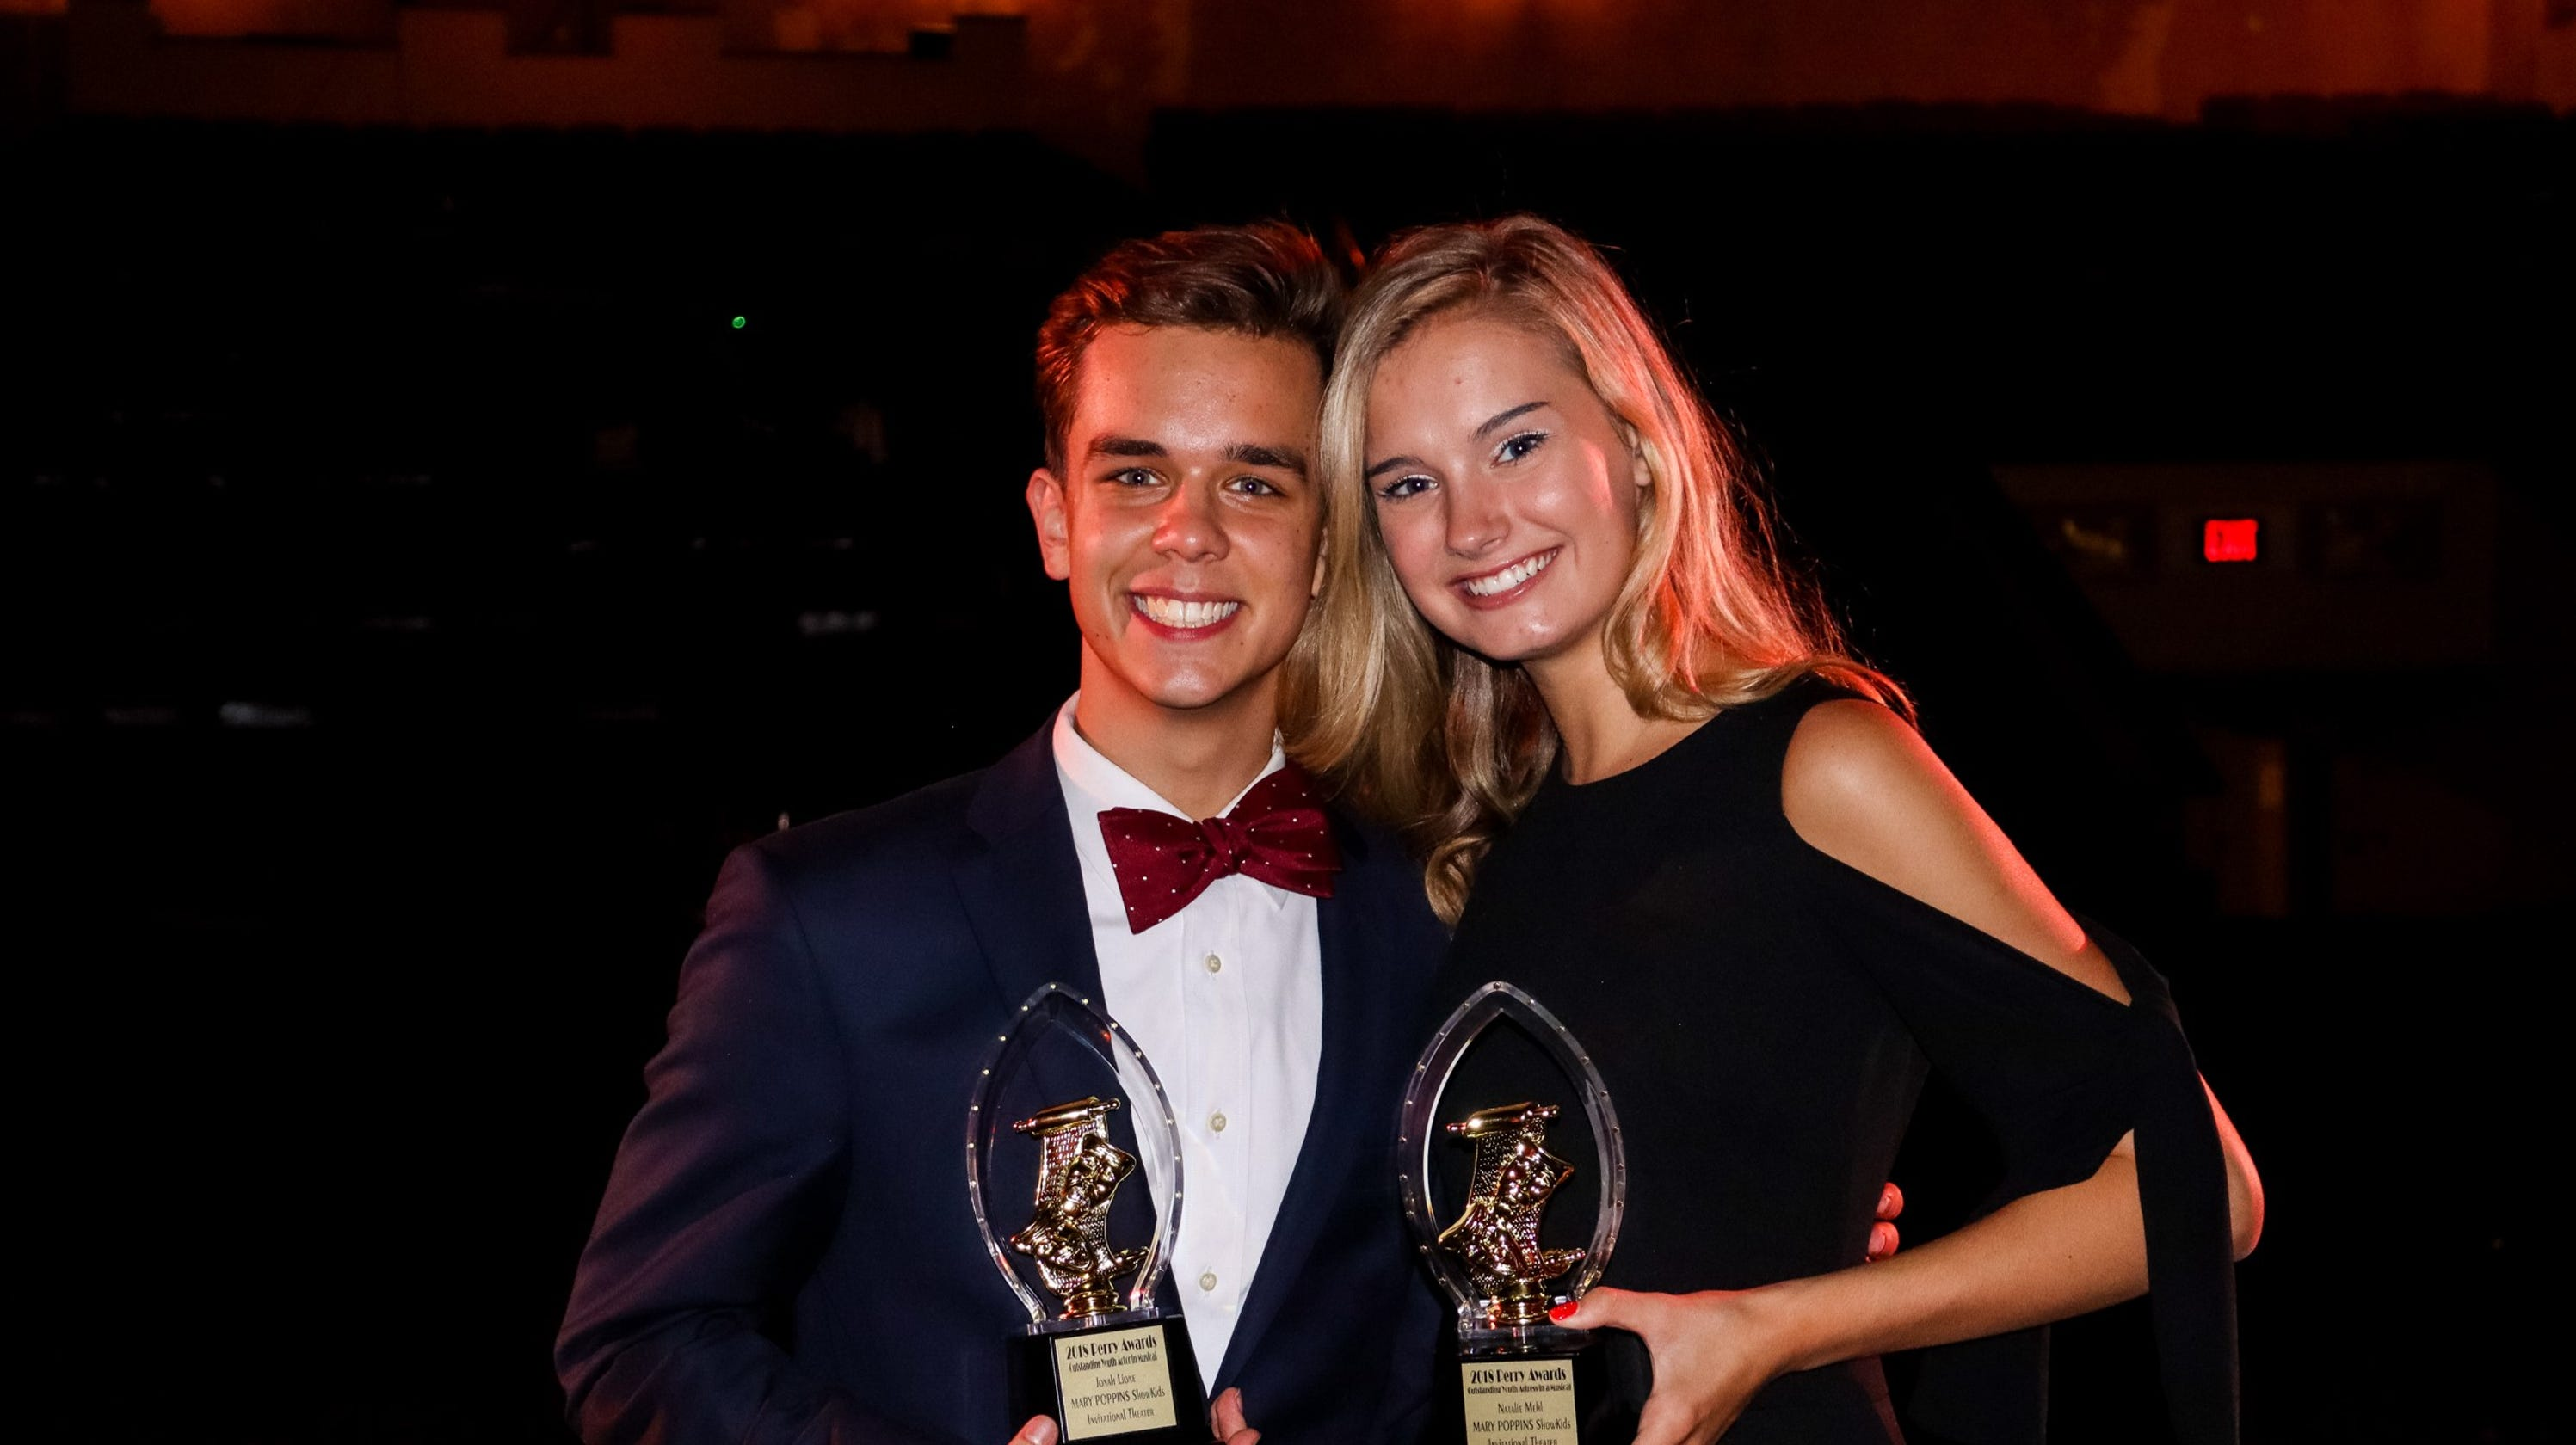 Student News Showkids Actors Honored With Njact Perry Awards For